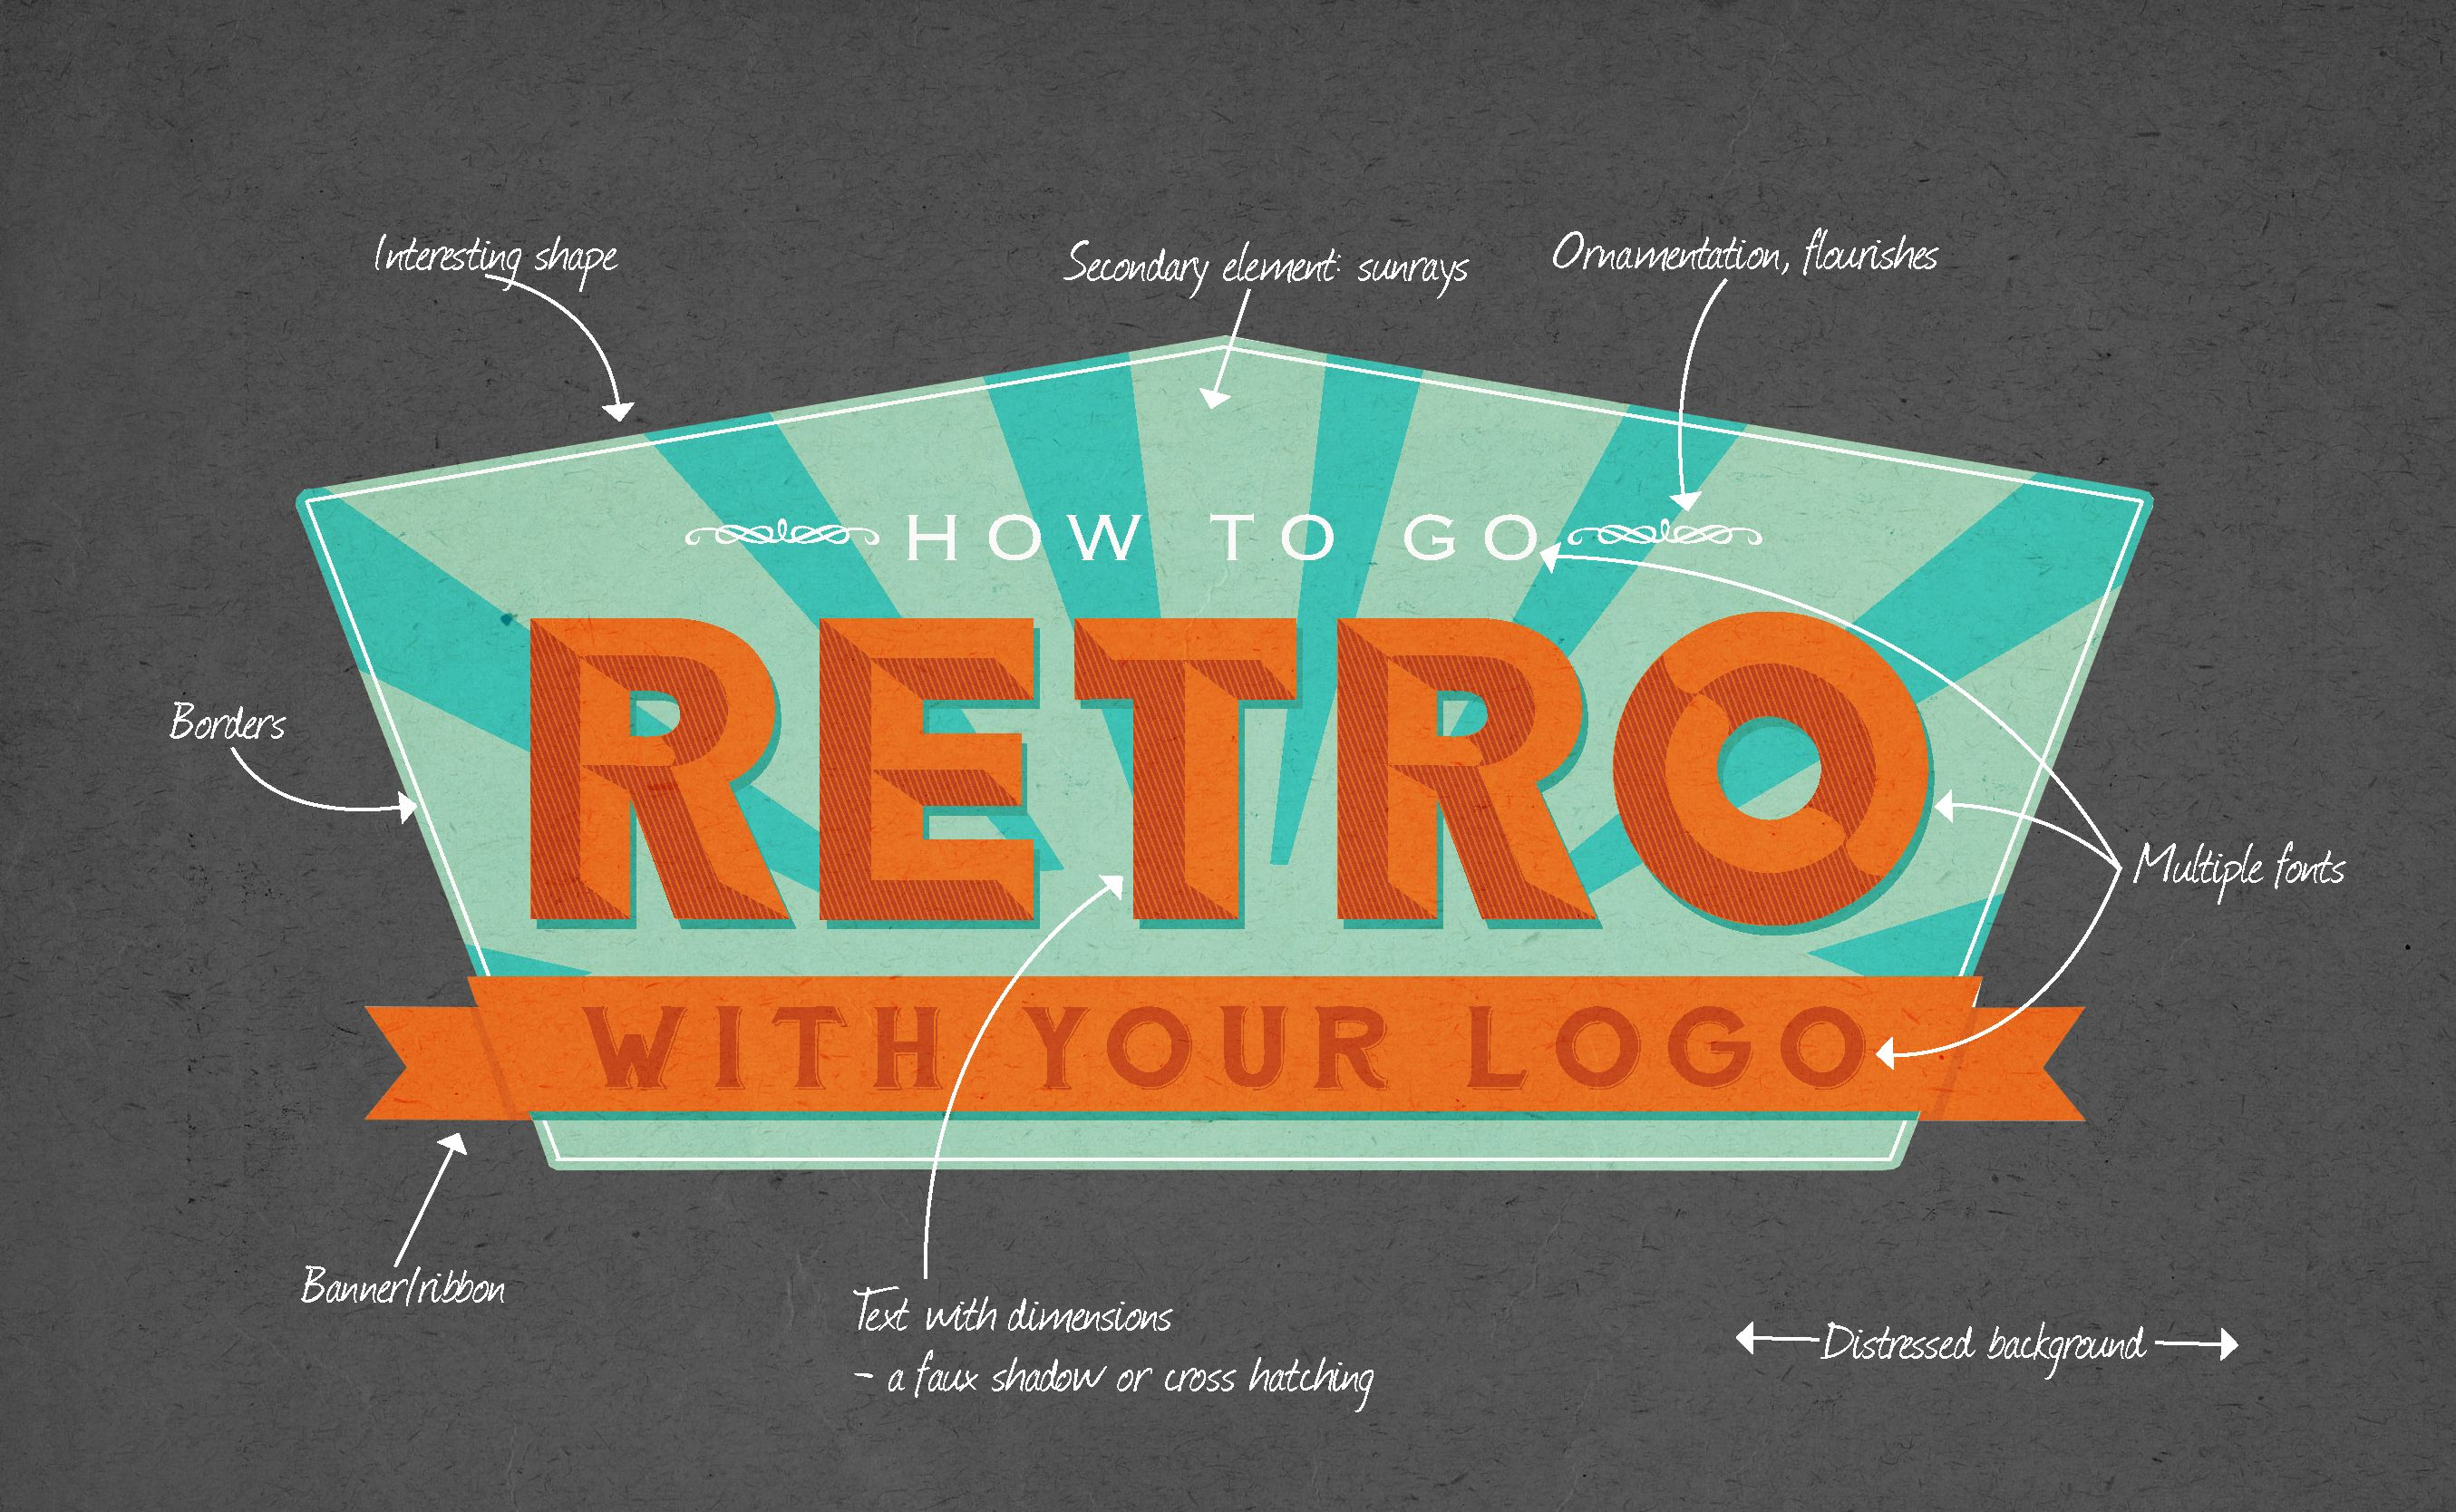 17 best images about Retro Logo Ideas on Pinterest | Logos ...